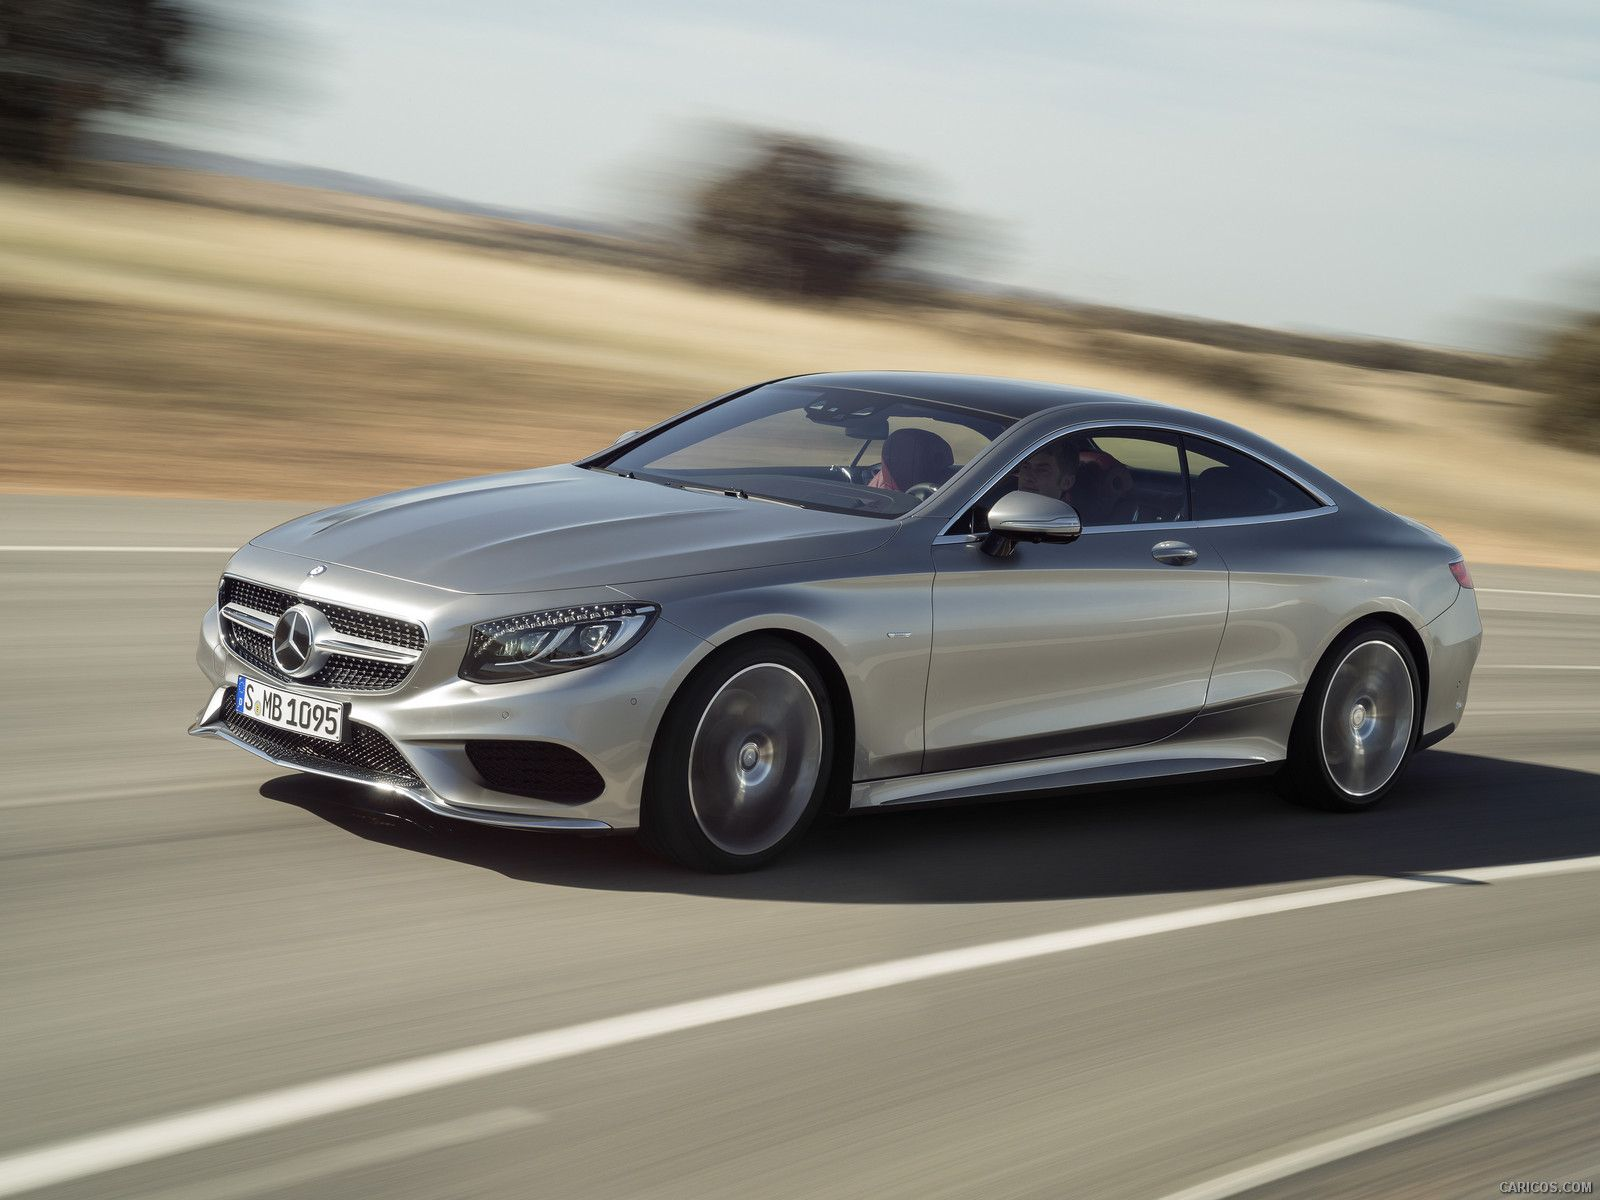 2015_mercedes-benz_s-class_coupe_4_1600x1200